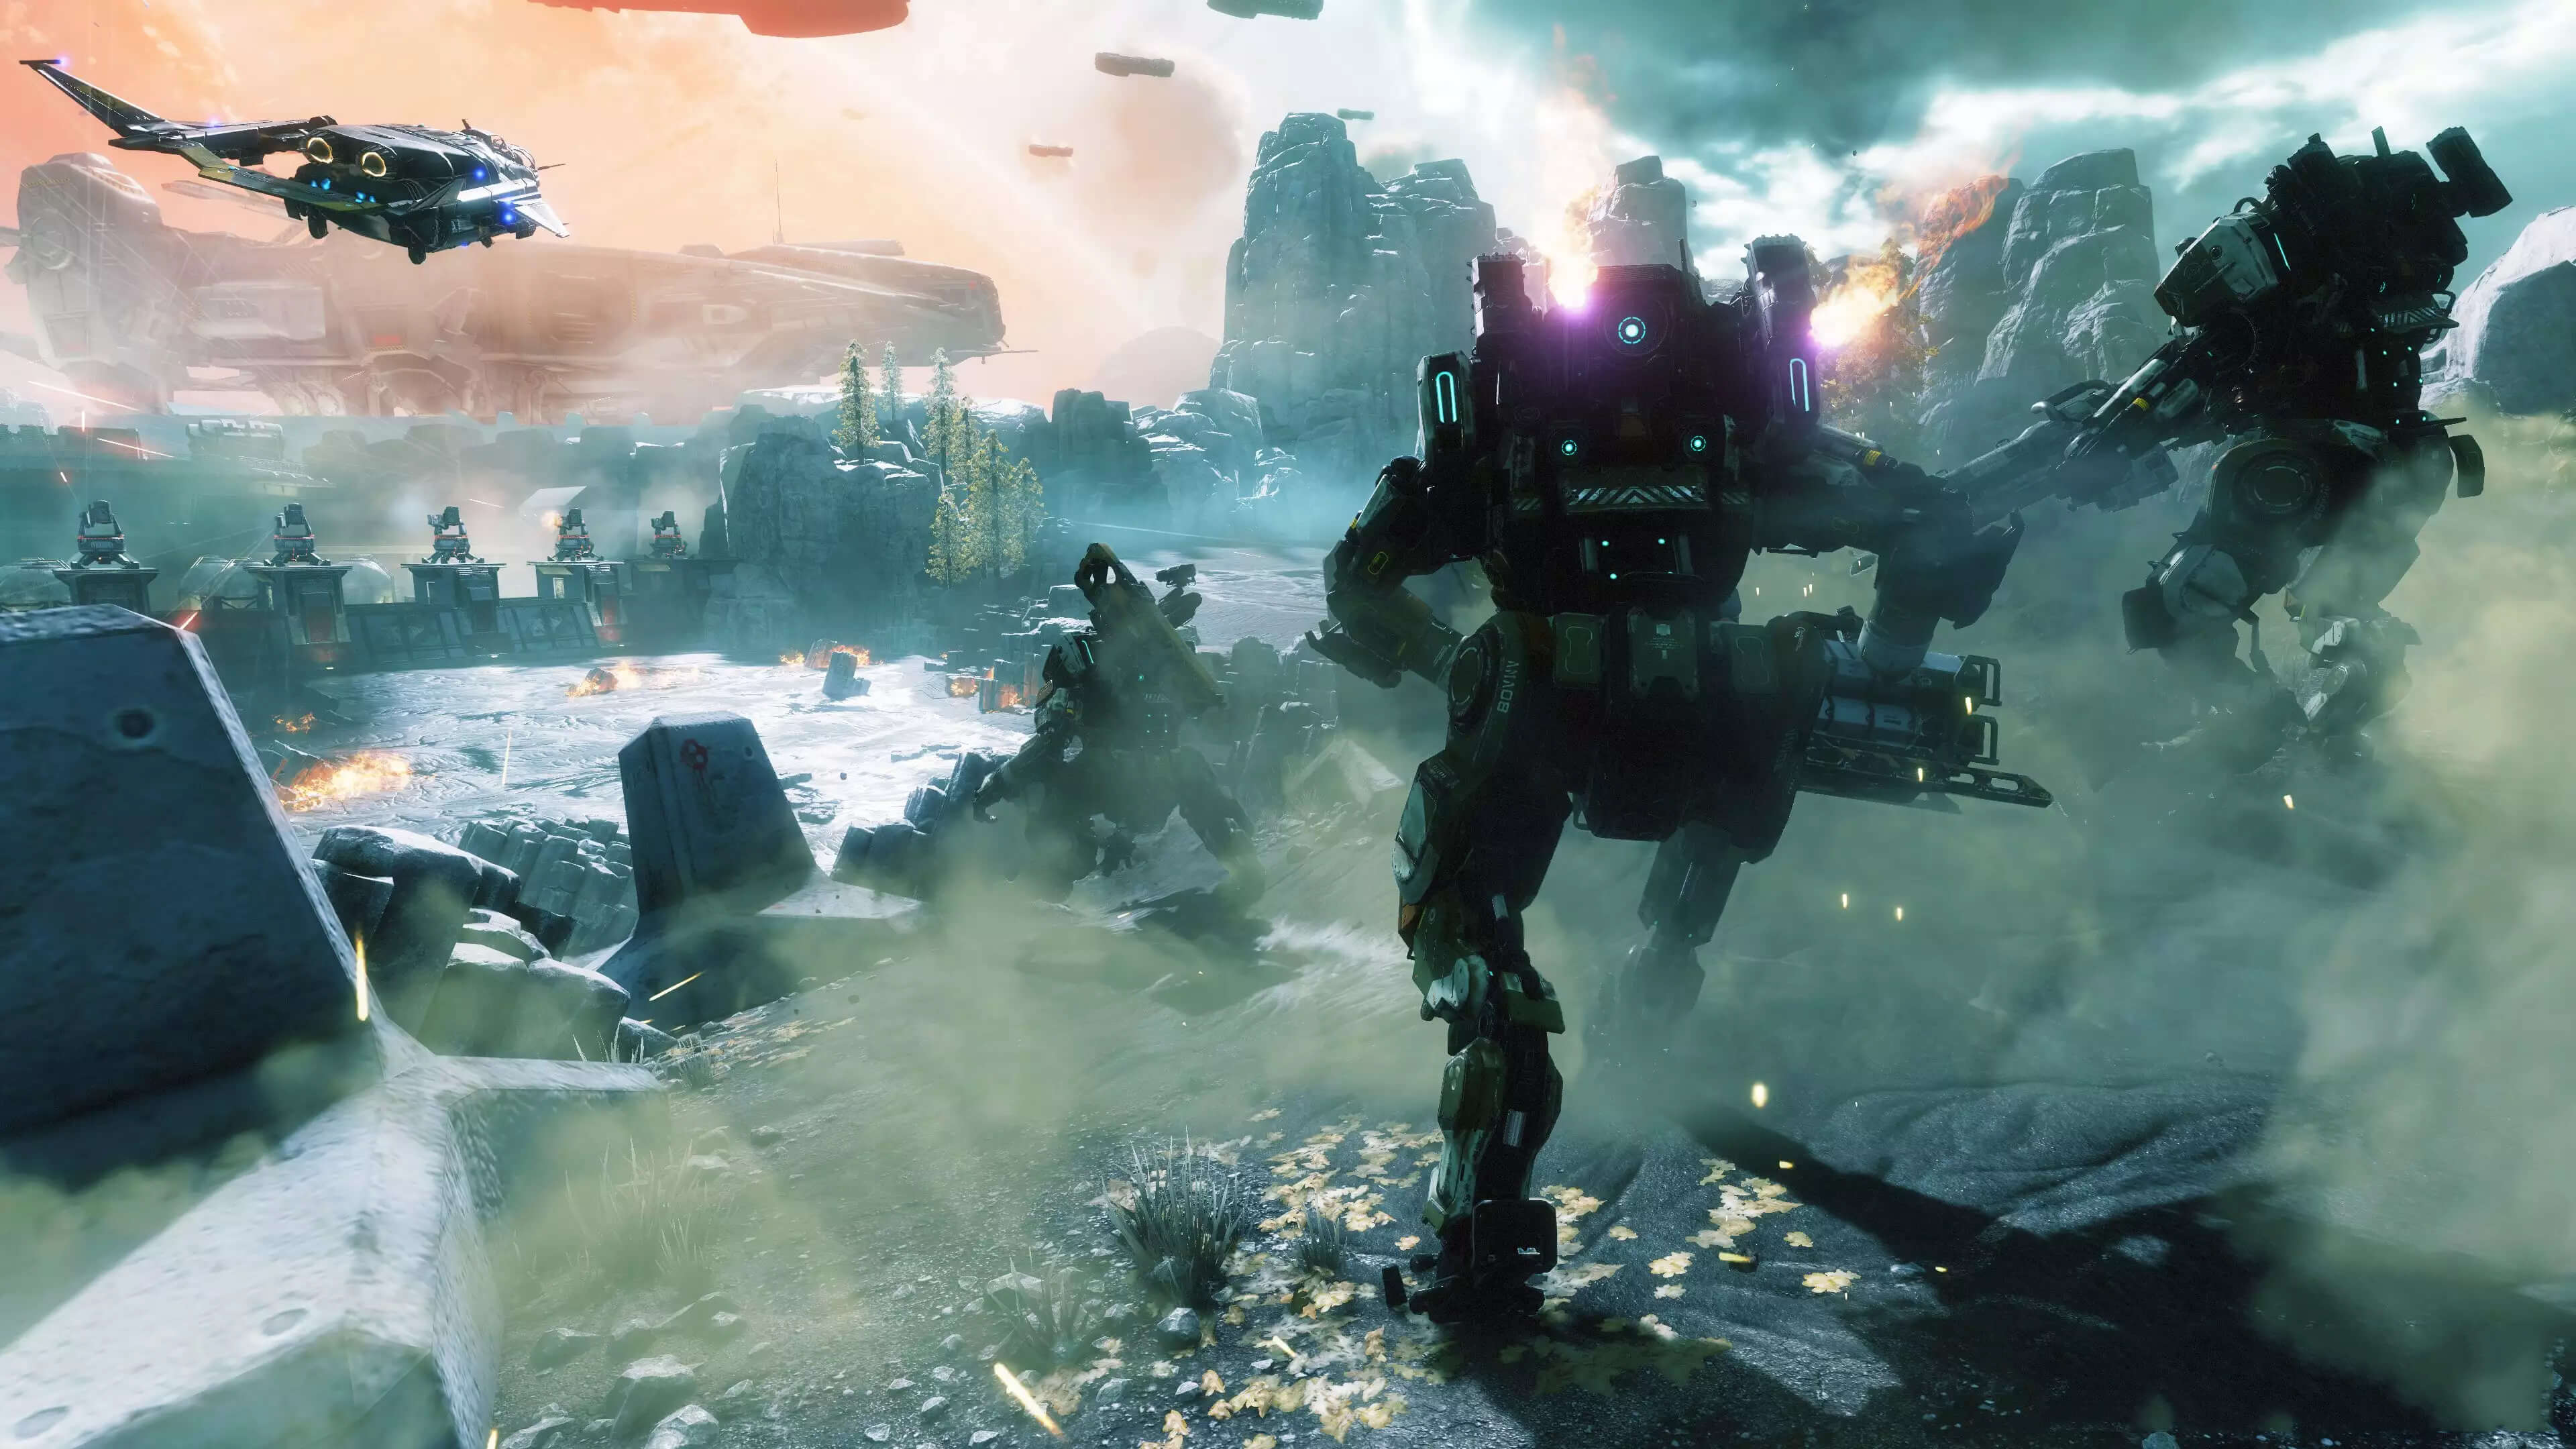 Titanfall 2 Benchmarked: Graphics & CPU Performance - TechSpot